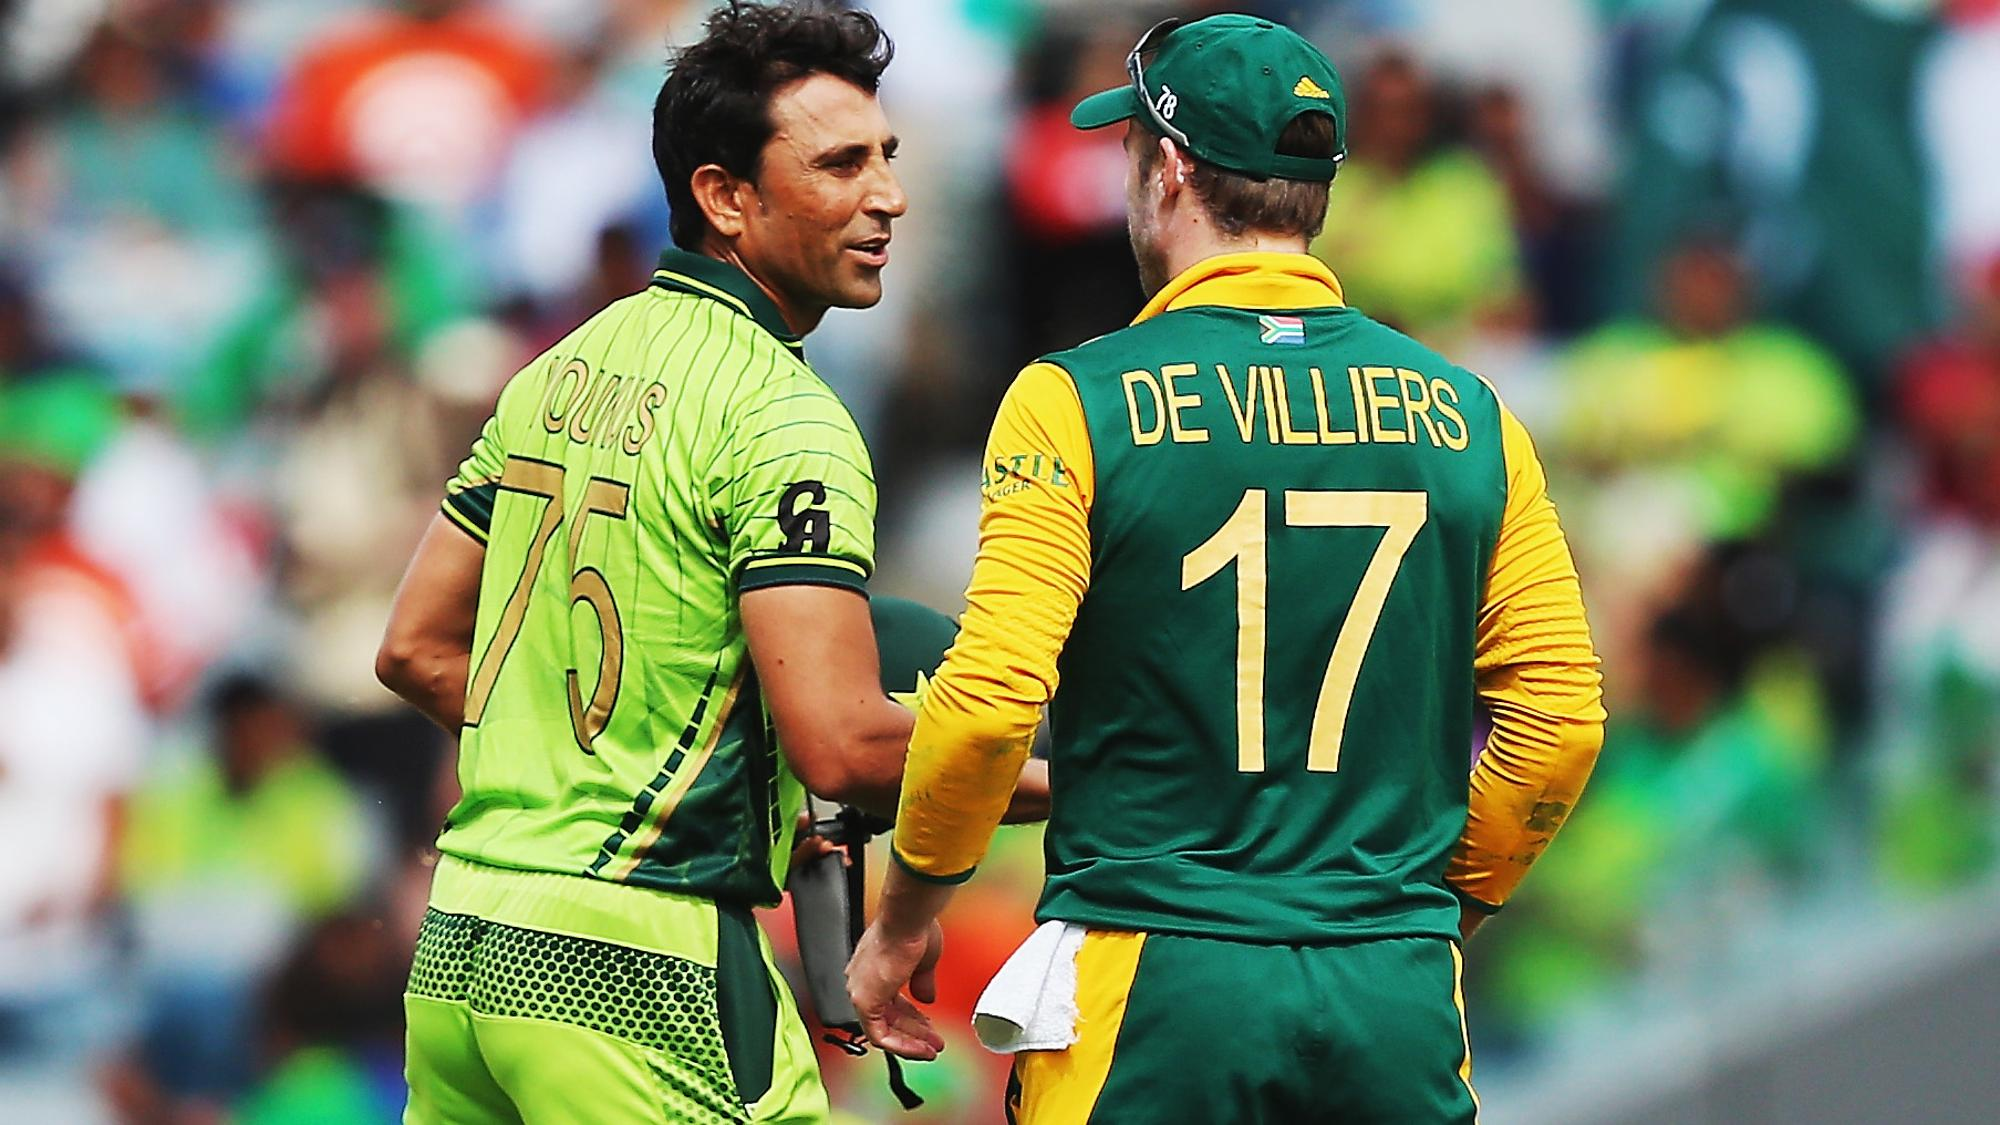 QUIZ: South Africa v Pakistan at the Cricket World Cup